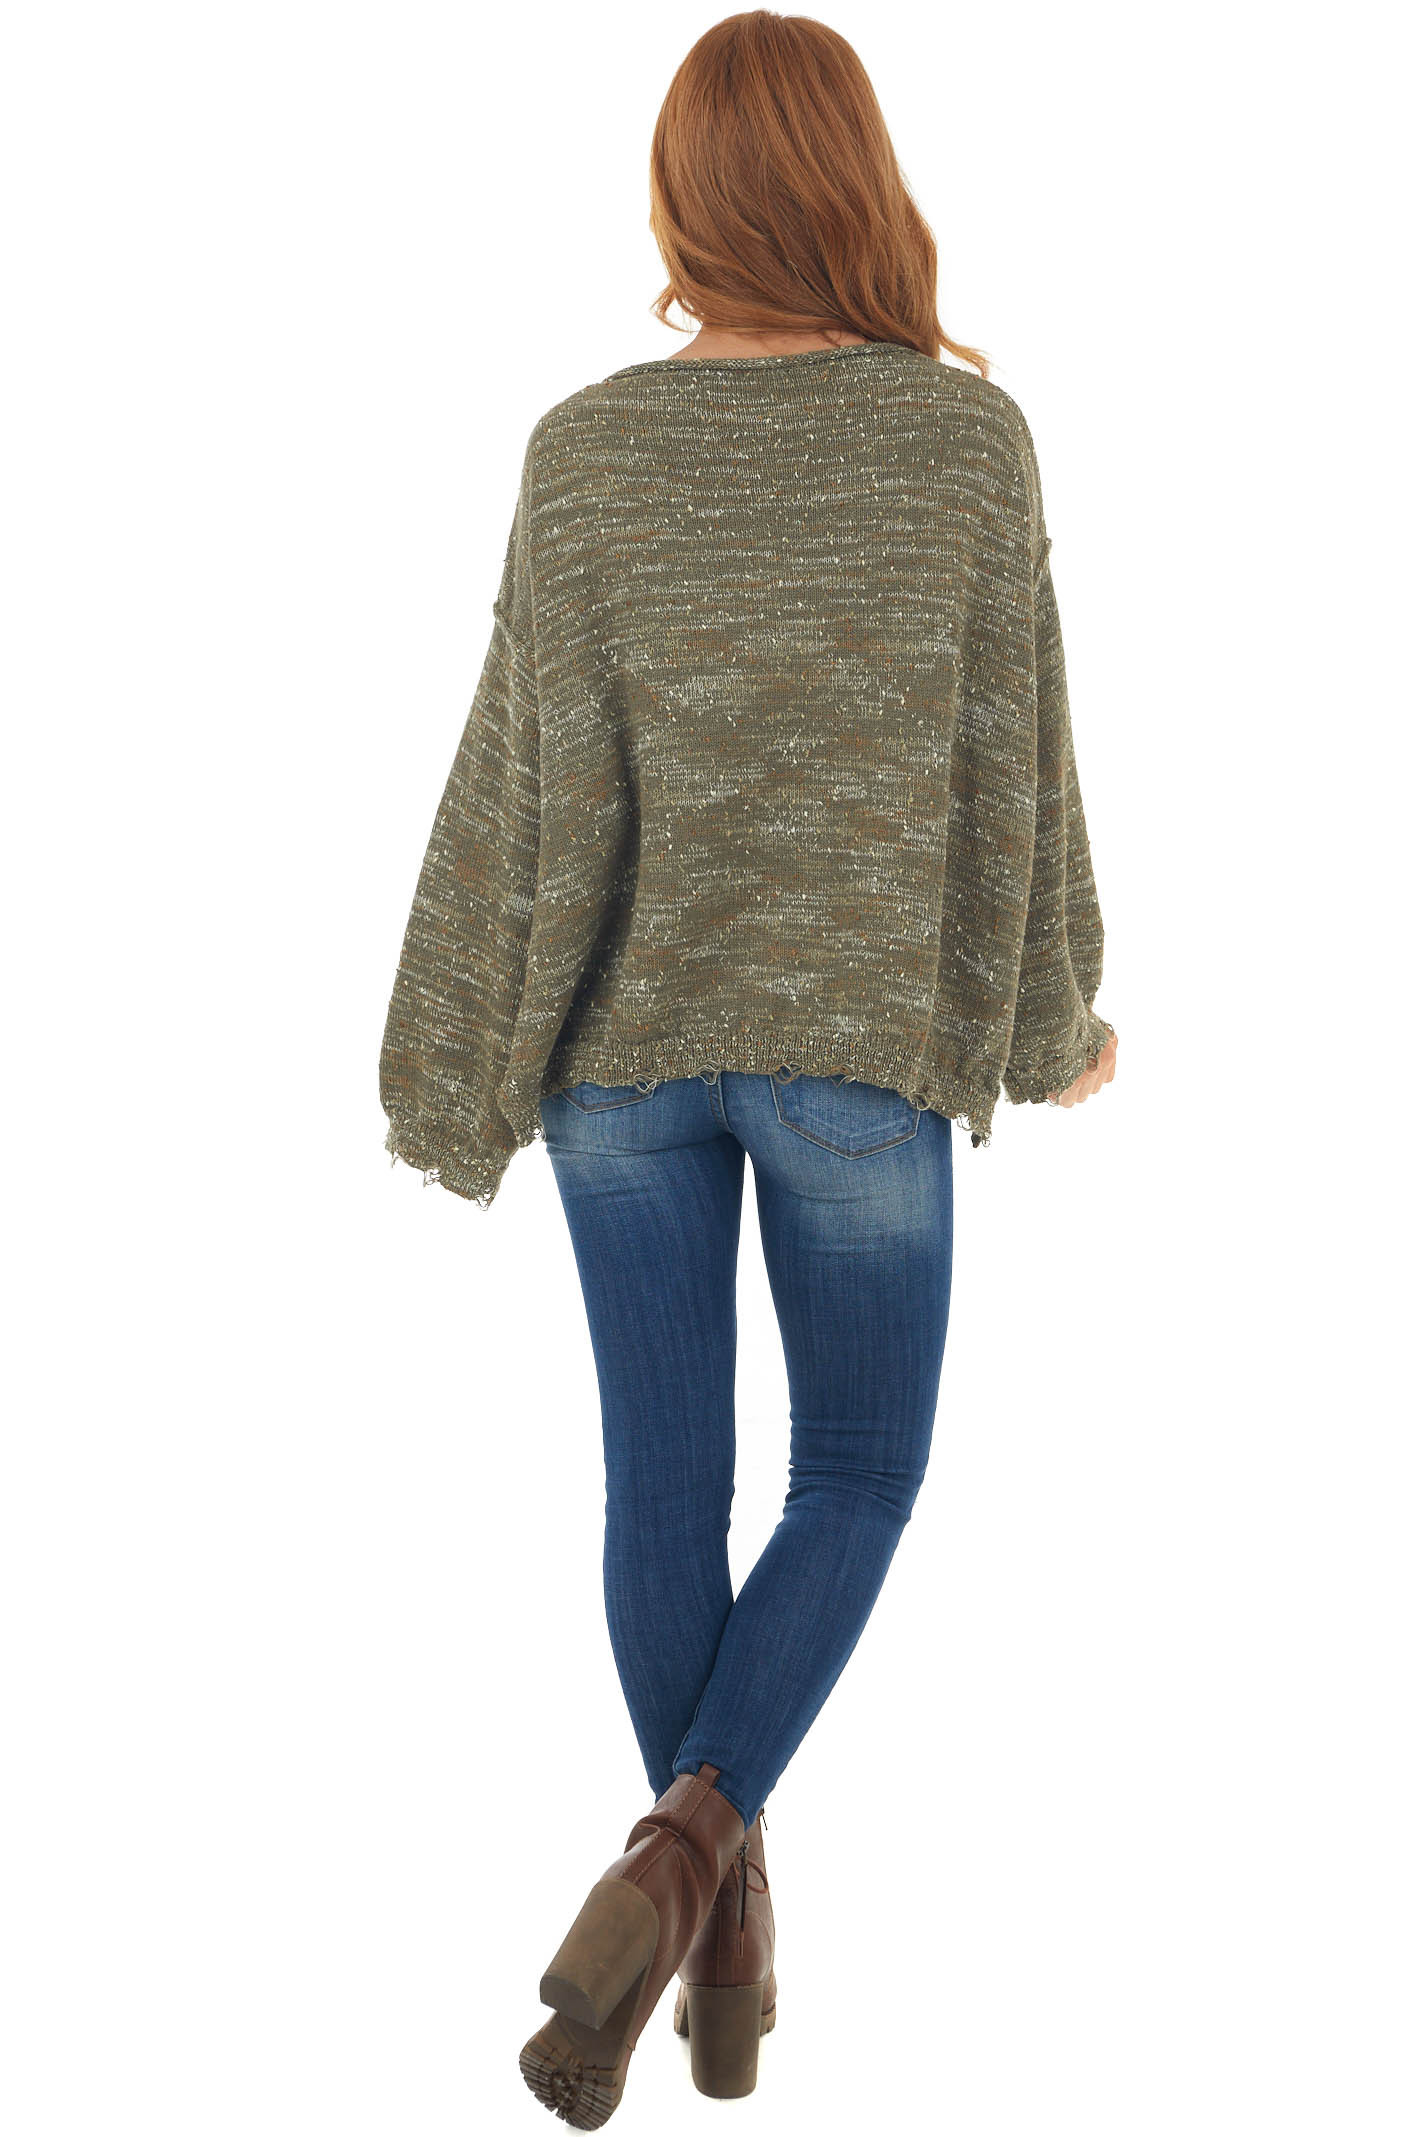 Army Green Abstract Popcorn Oversized Sweater